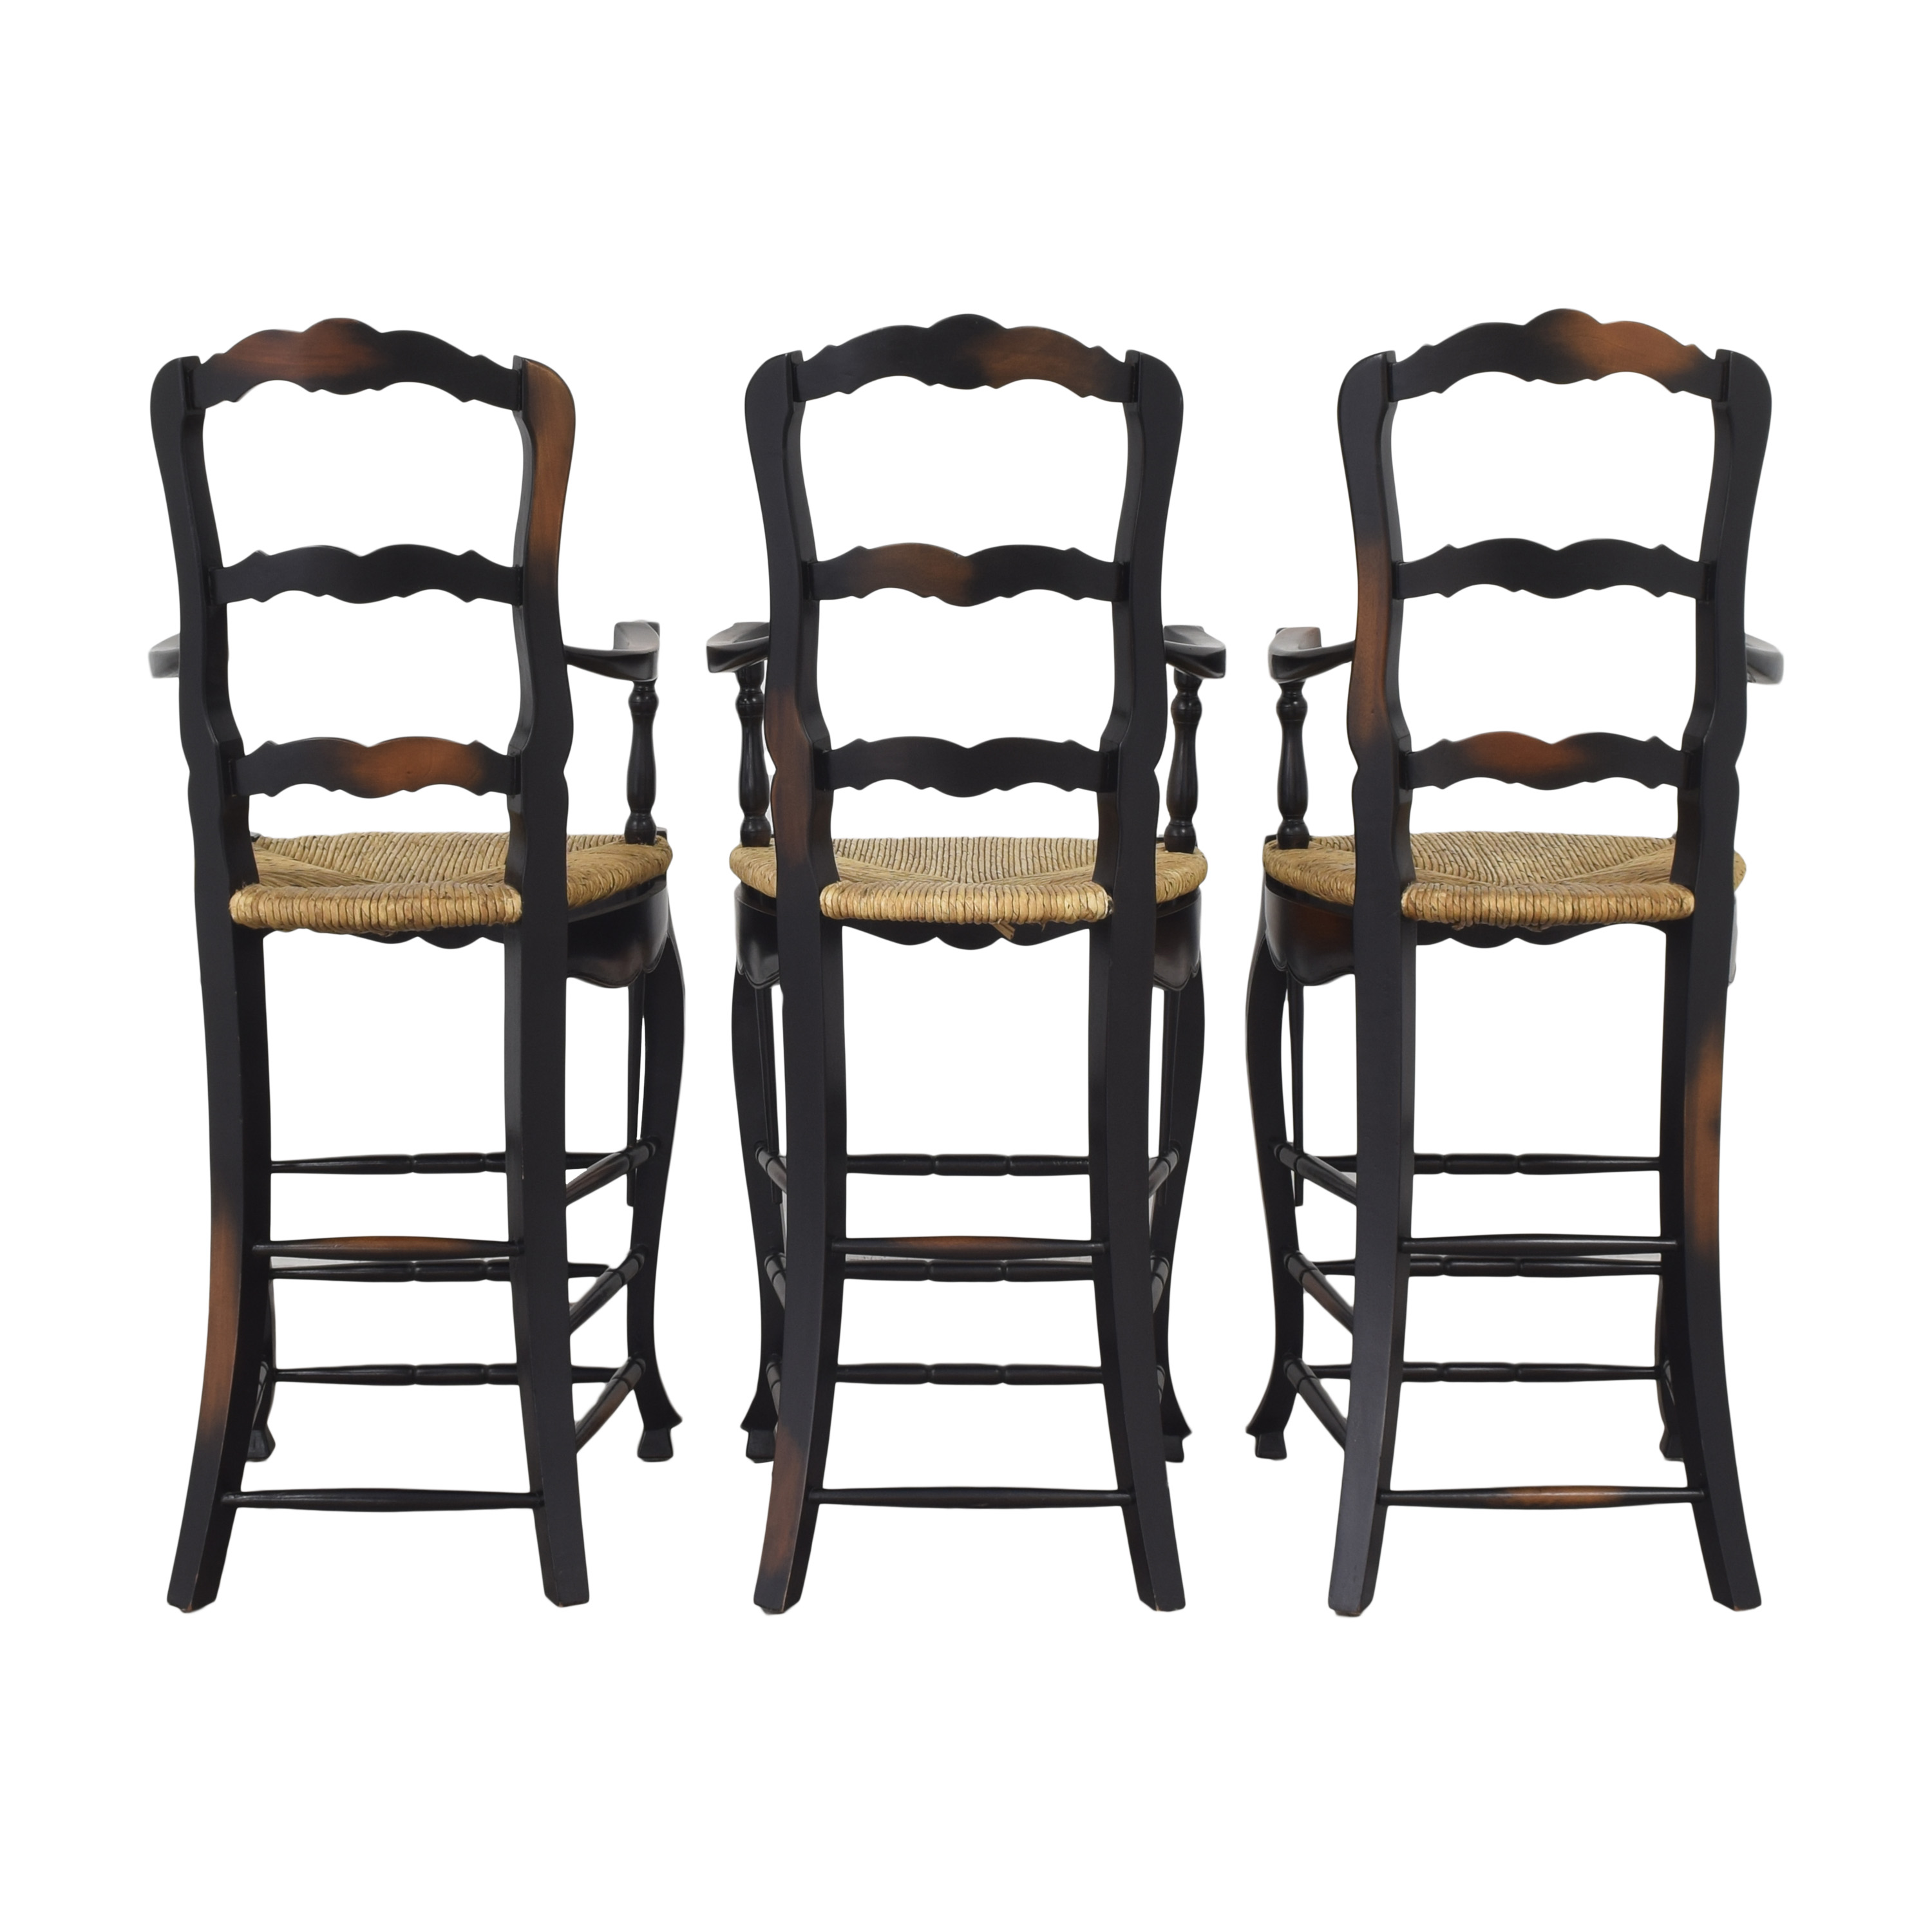 French Country Ladderback Stools nj